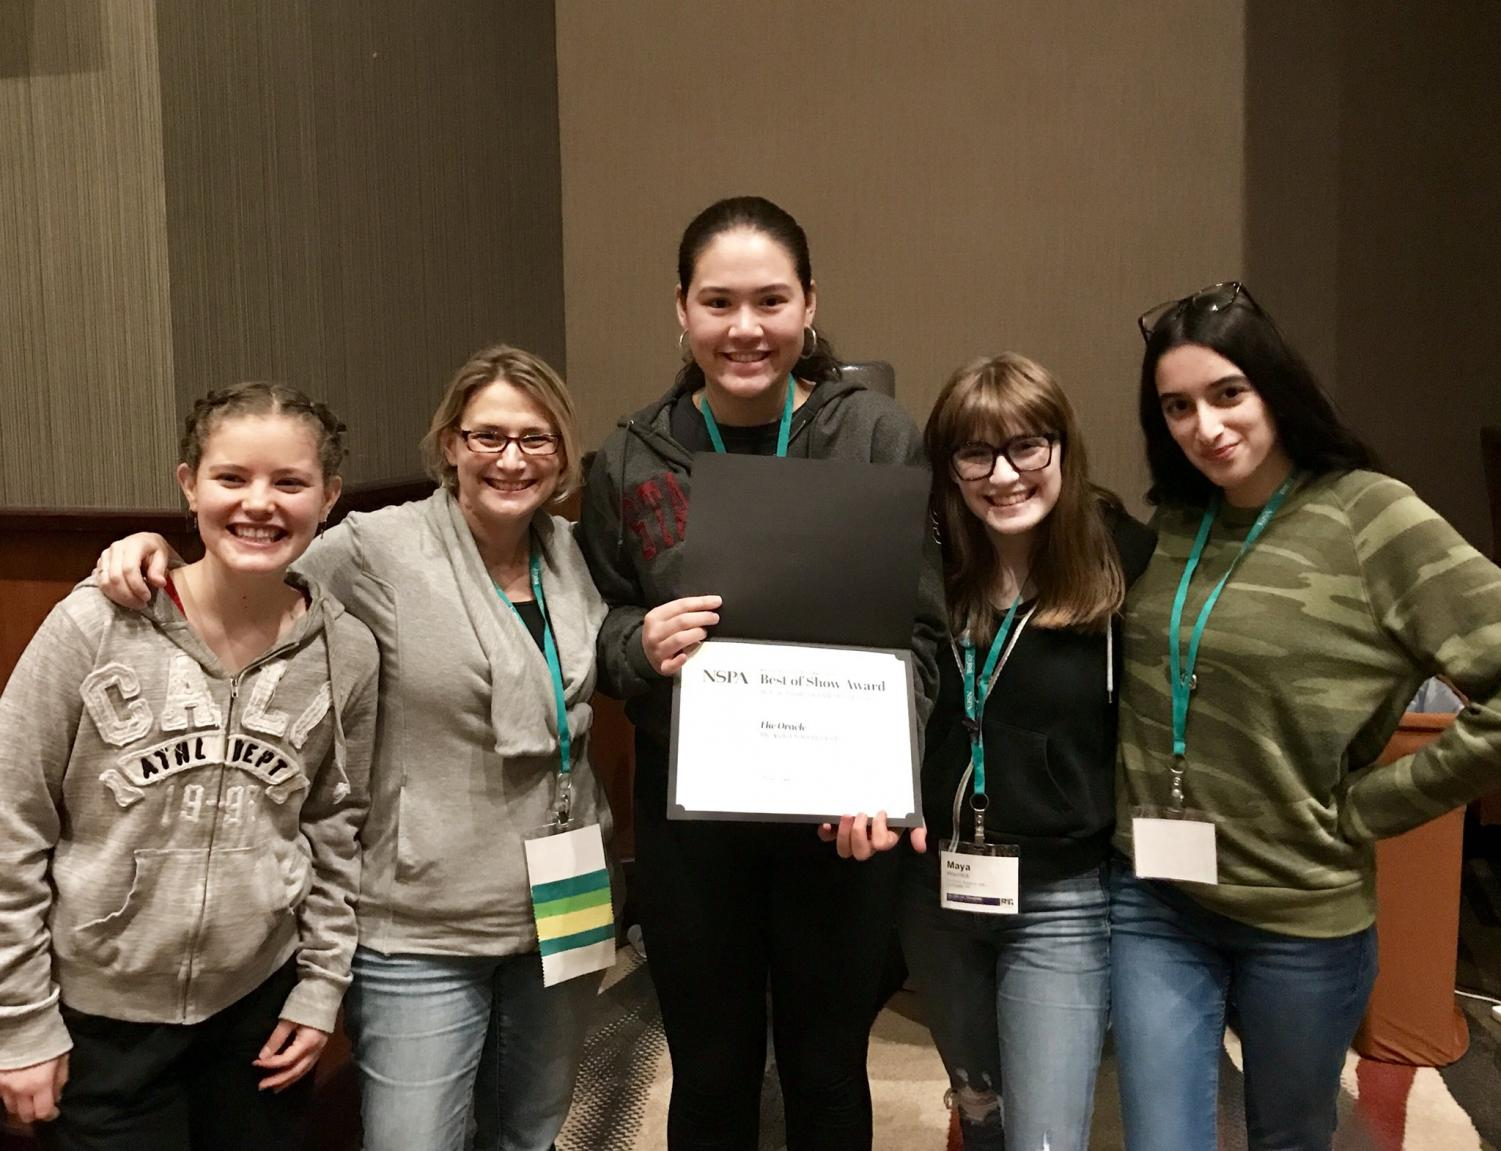 Grace Dieveney '21, adviser Kristin Taylor, Cybele Zhang '18, Maya Wernick '18 and Nelly Rouzroch '18 collect our fourth place award at the JEA/NSPA conference. This year's convention was held in Dallas and had the theme